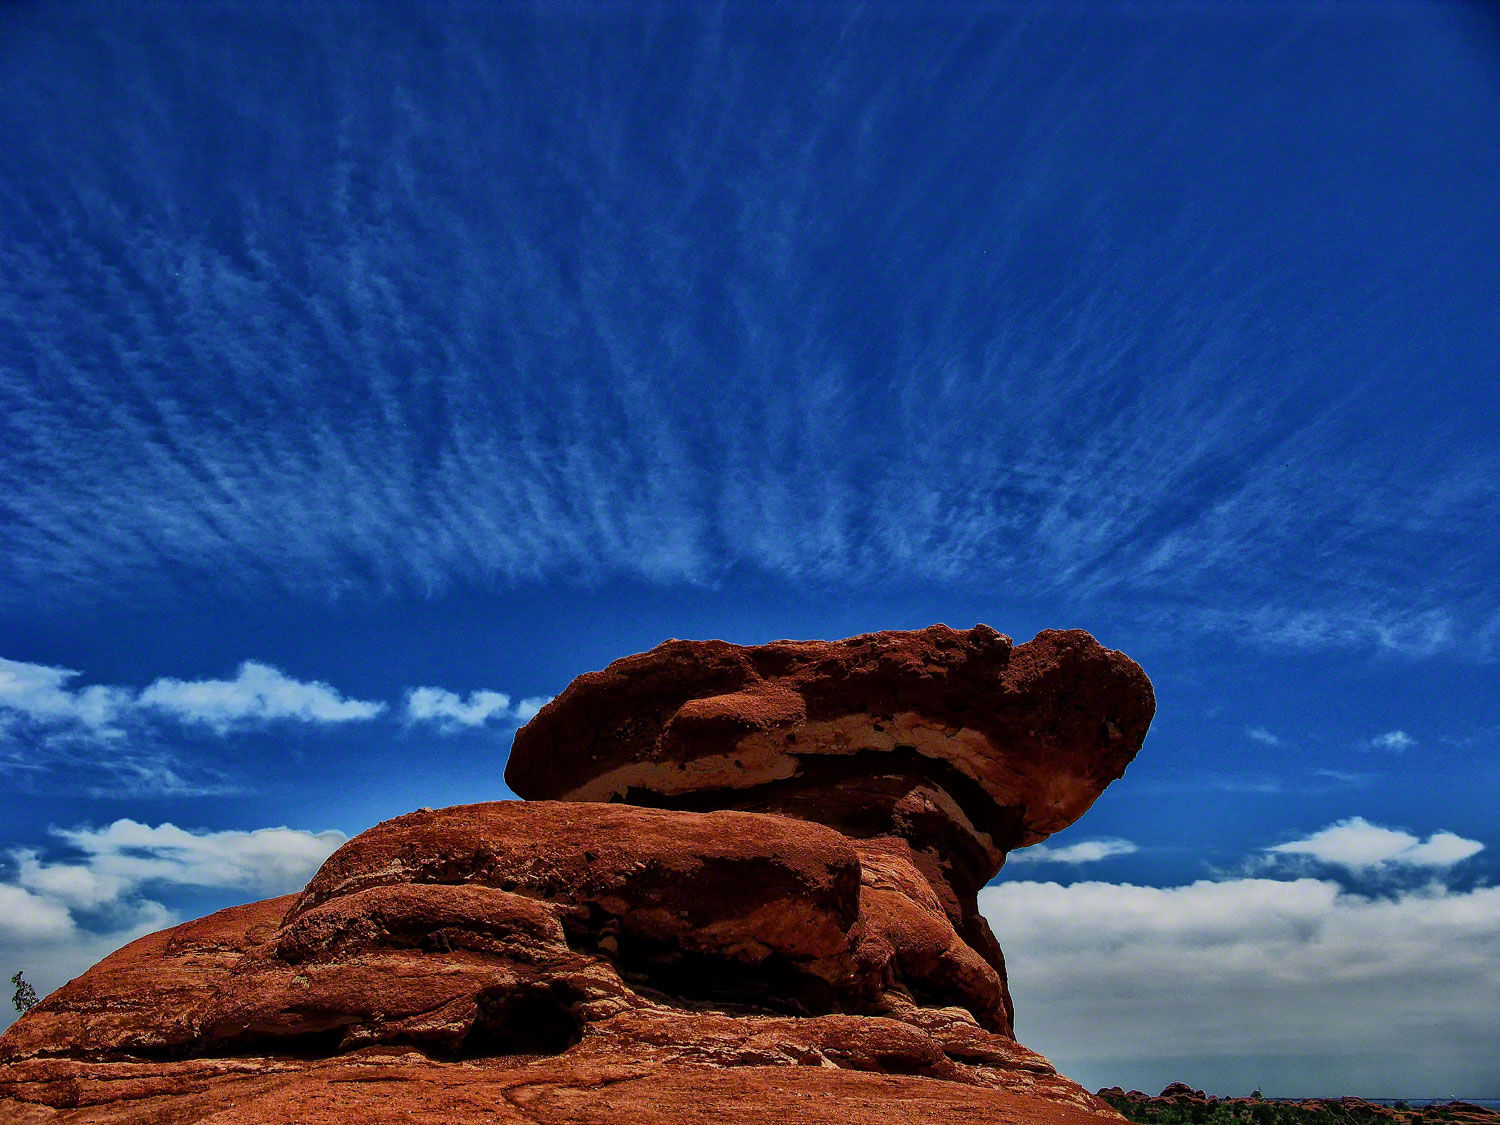 A perfect cloud formation surrounds the Scotsman Rock.